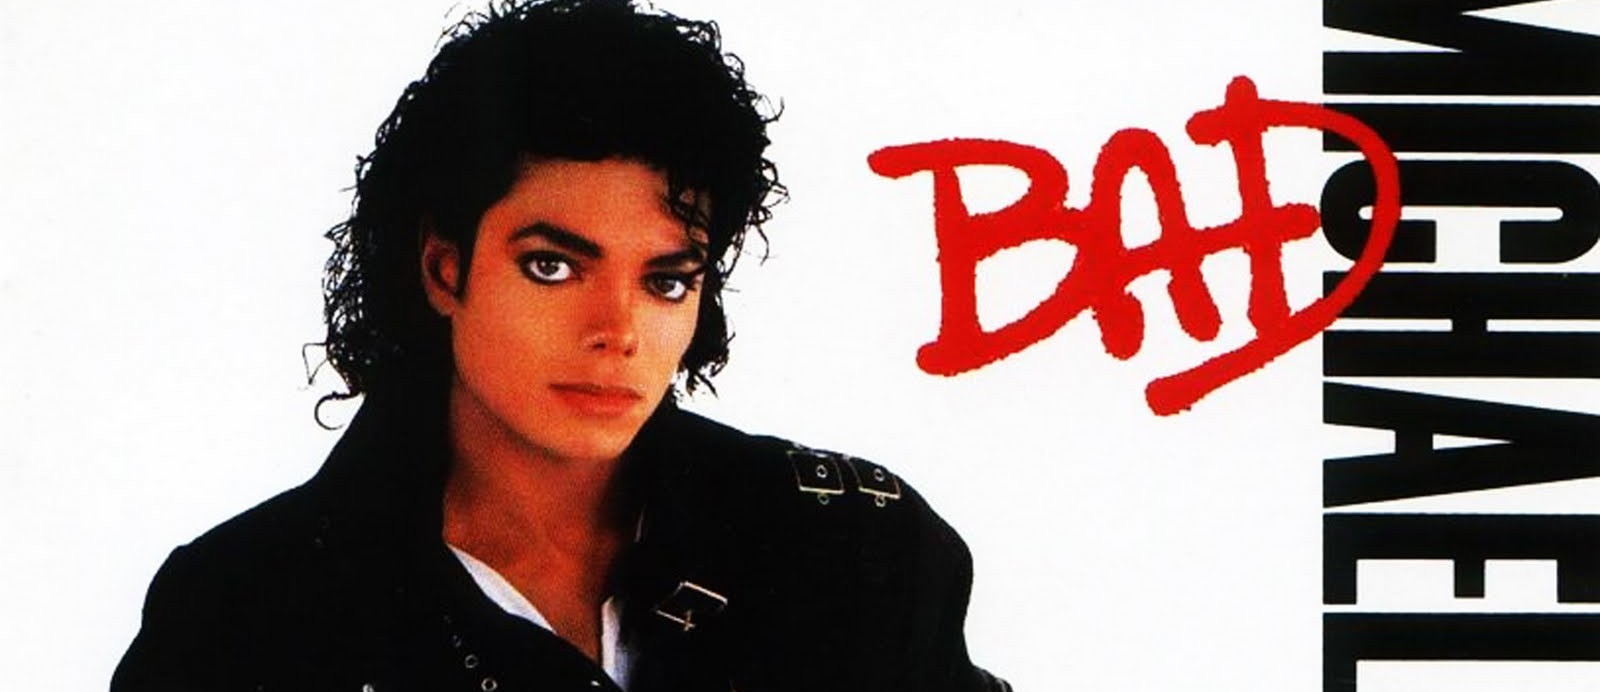 Spike Lee hyller Michael Jackson i dokumentaren om Bad